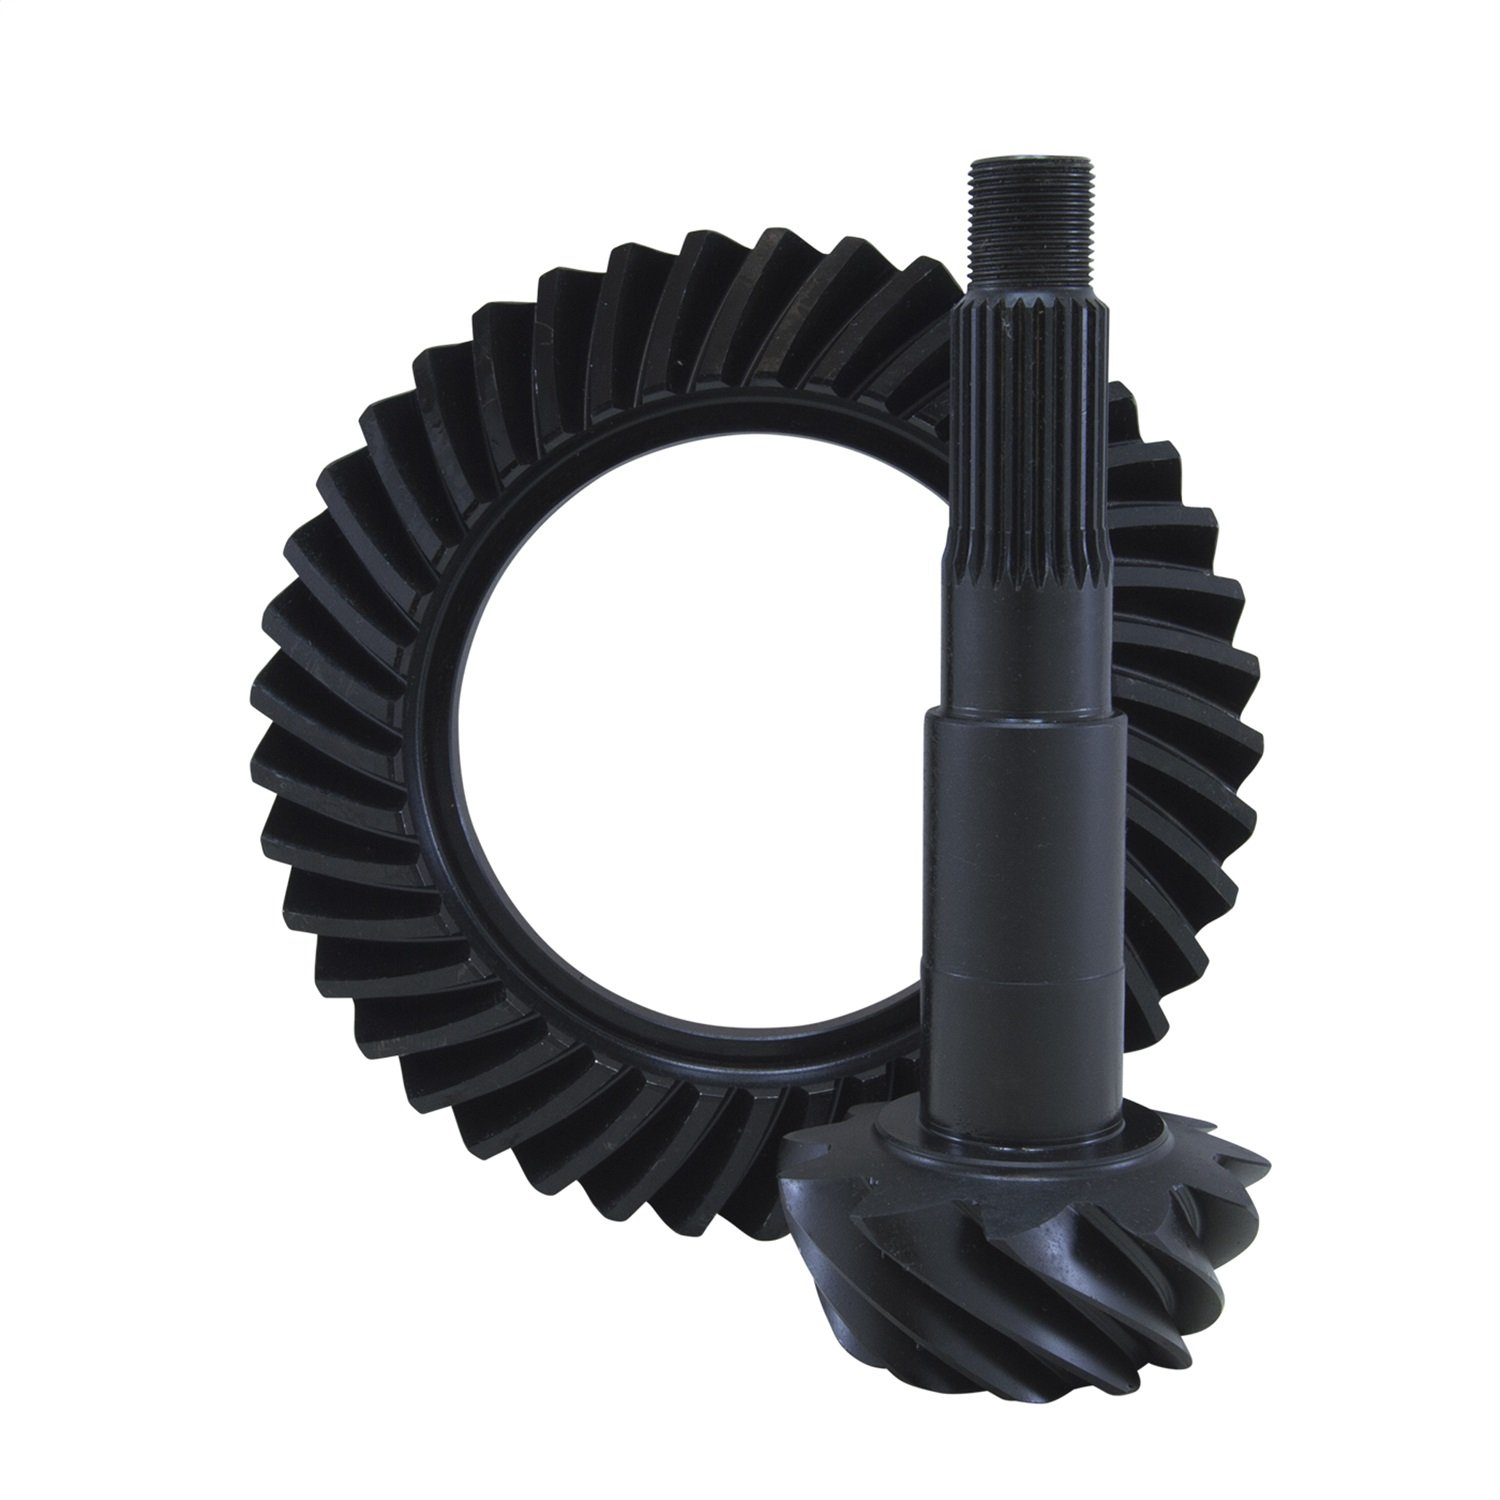 USA Standard Gear (ZG GM12P-373-4) Ring and Pinion Gear Set for GM 12-Bolt Car Differential